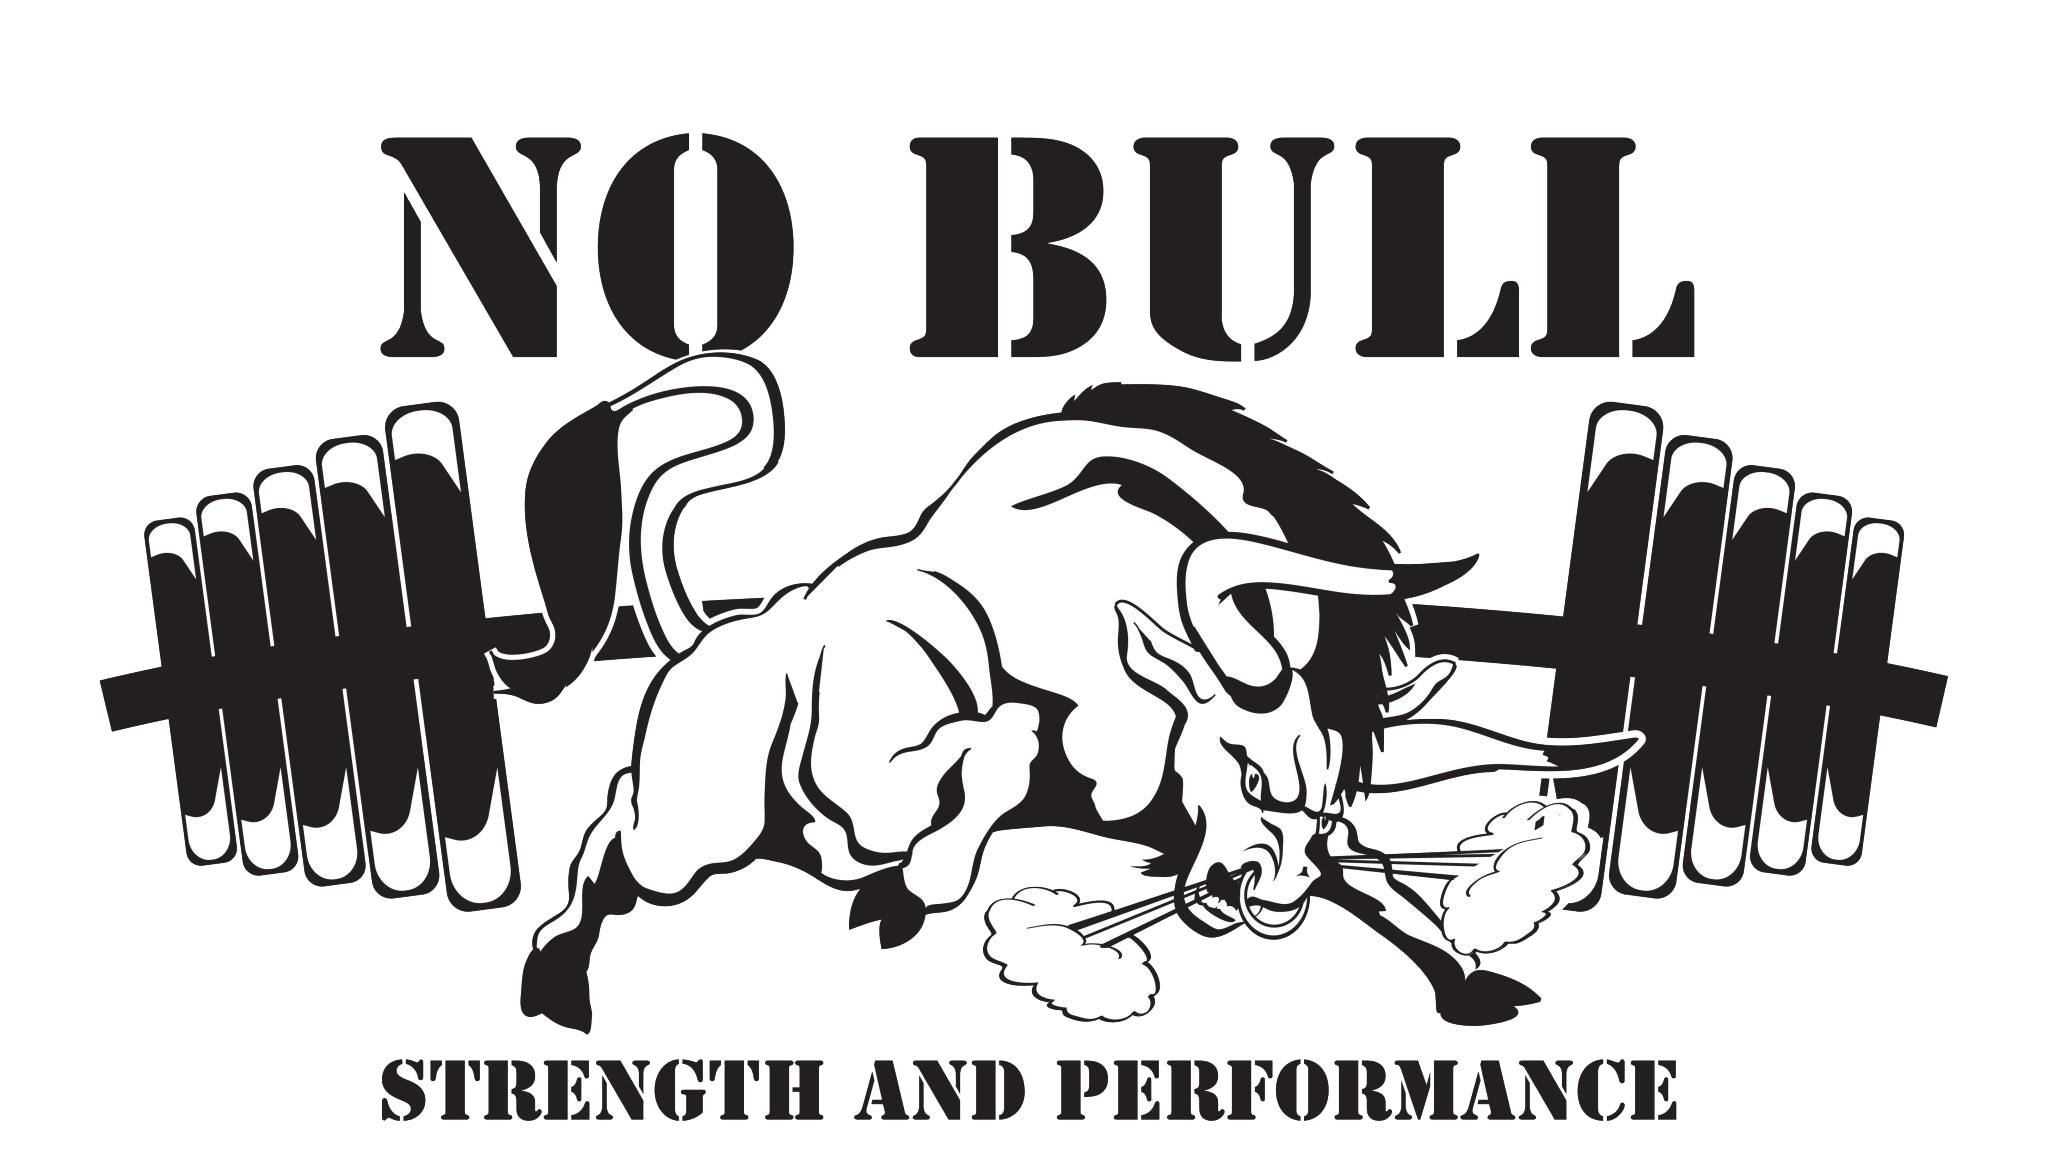 No bull did you. Exercising clipart strength